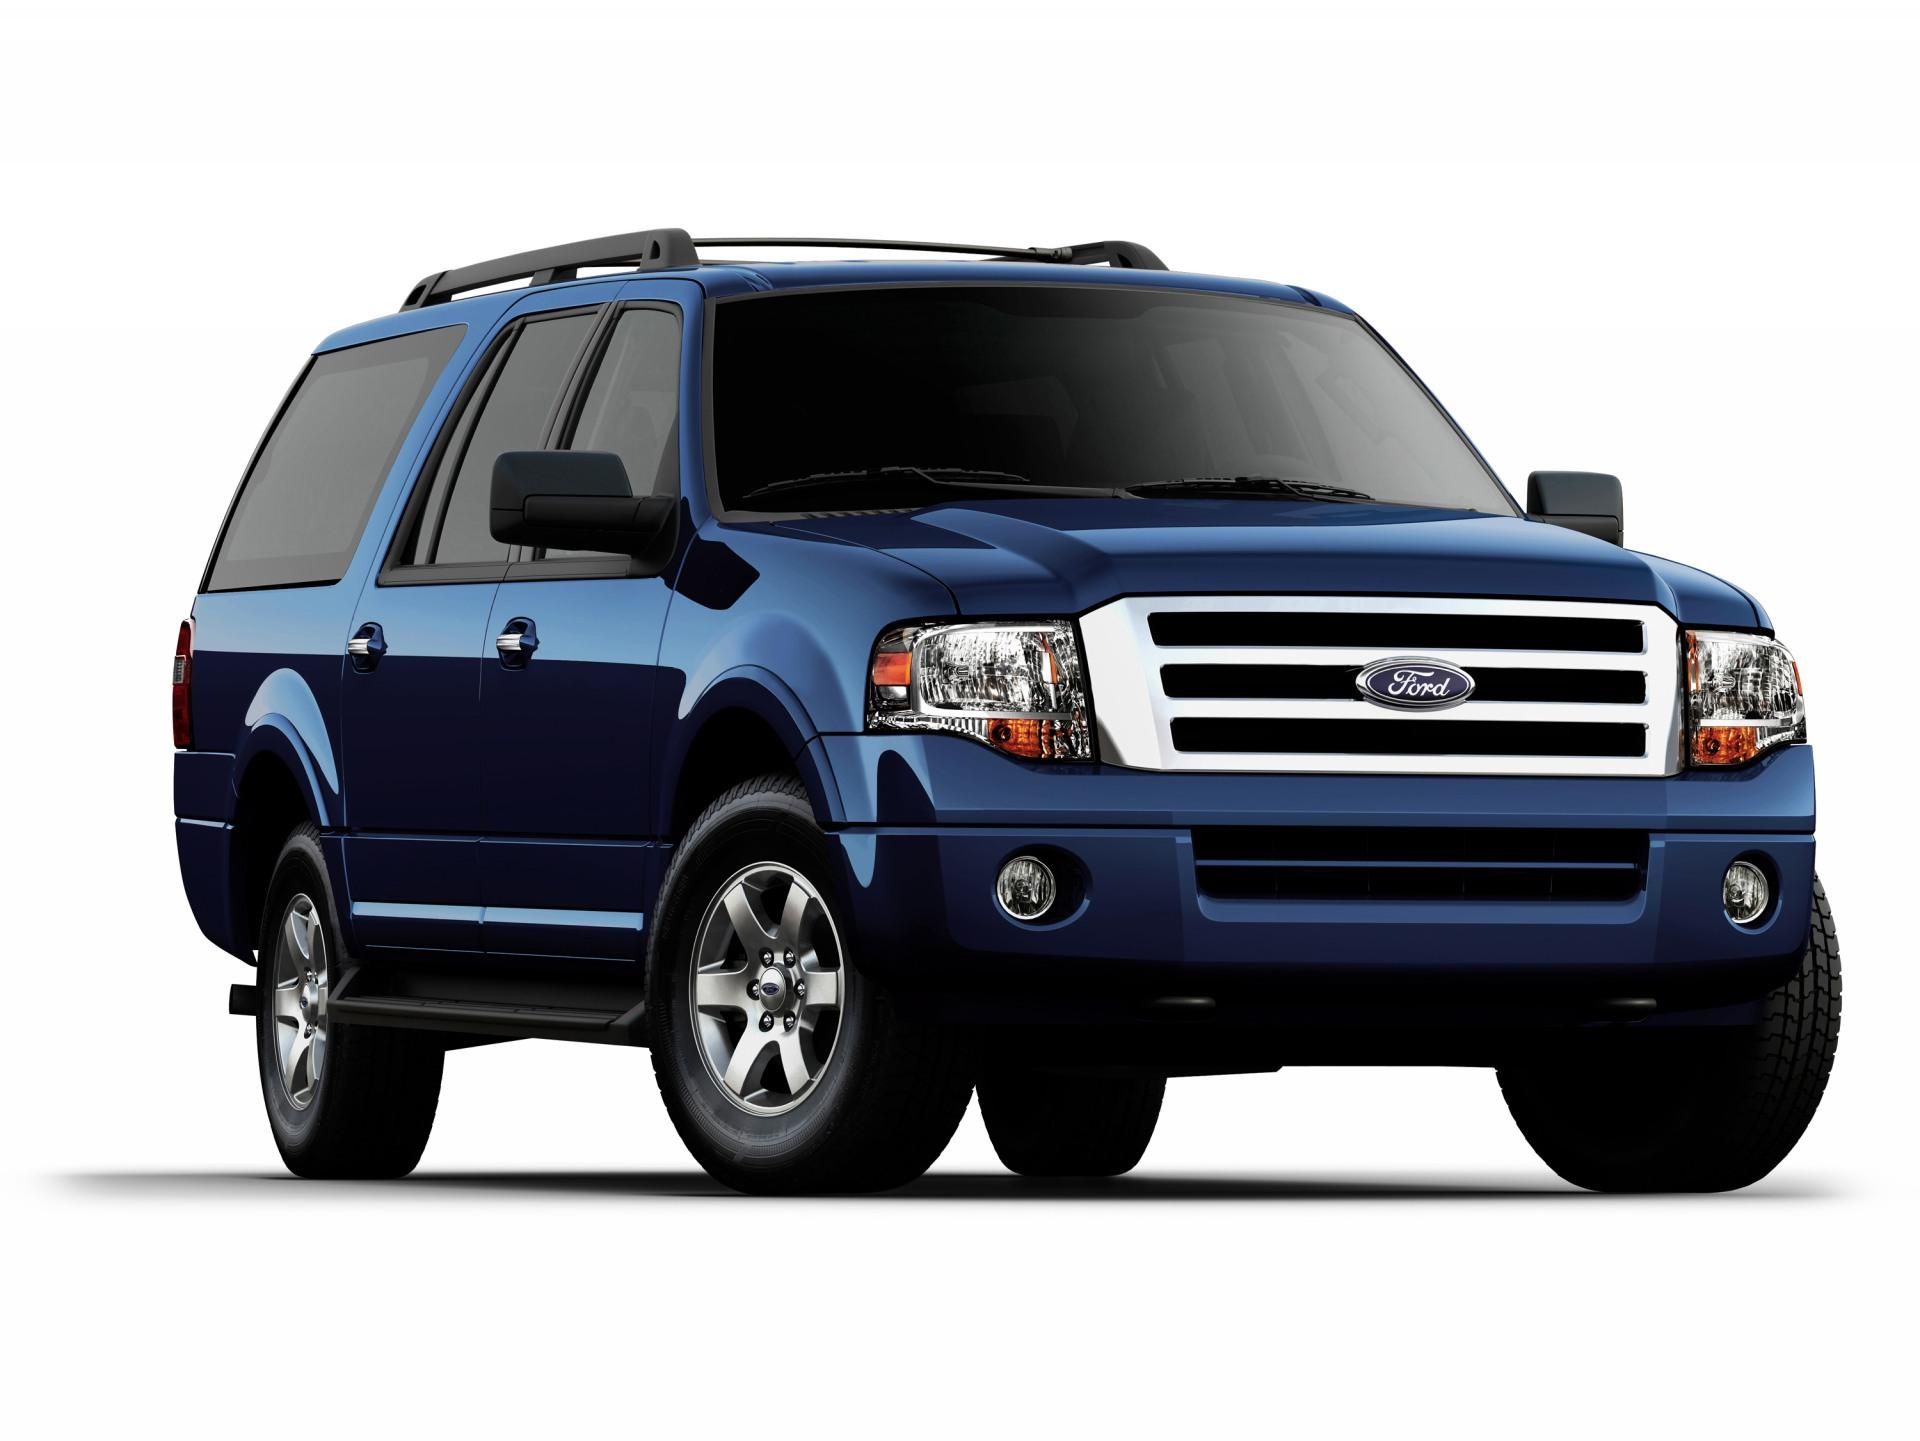 2010 ford expedition news and information conceptcarz com